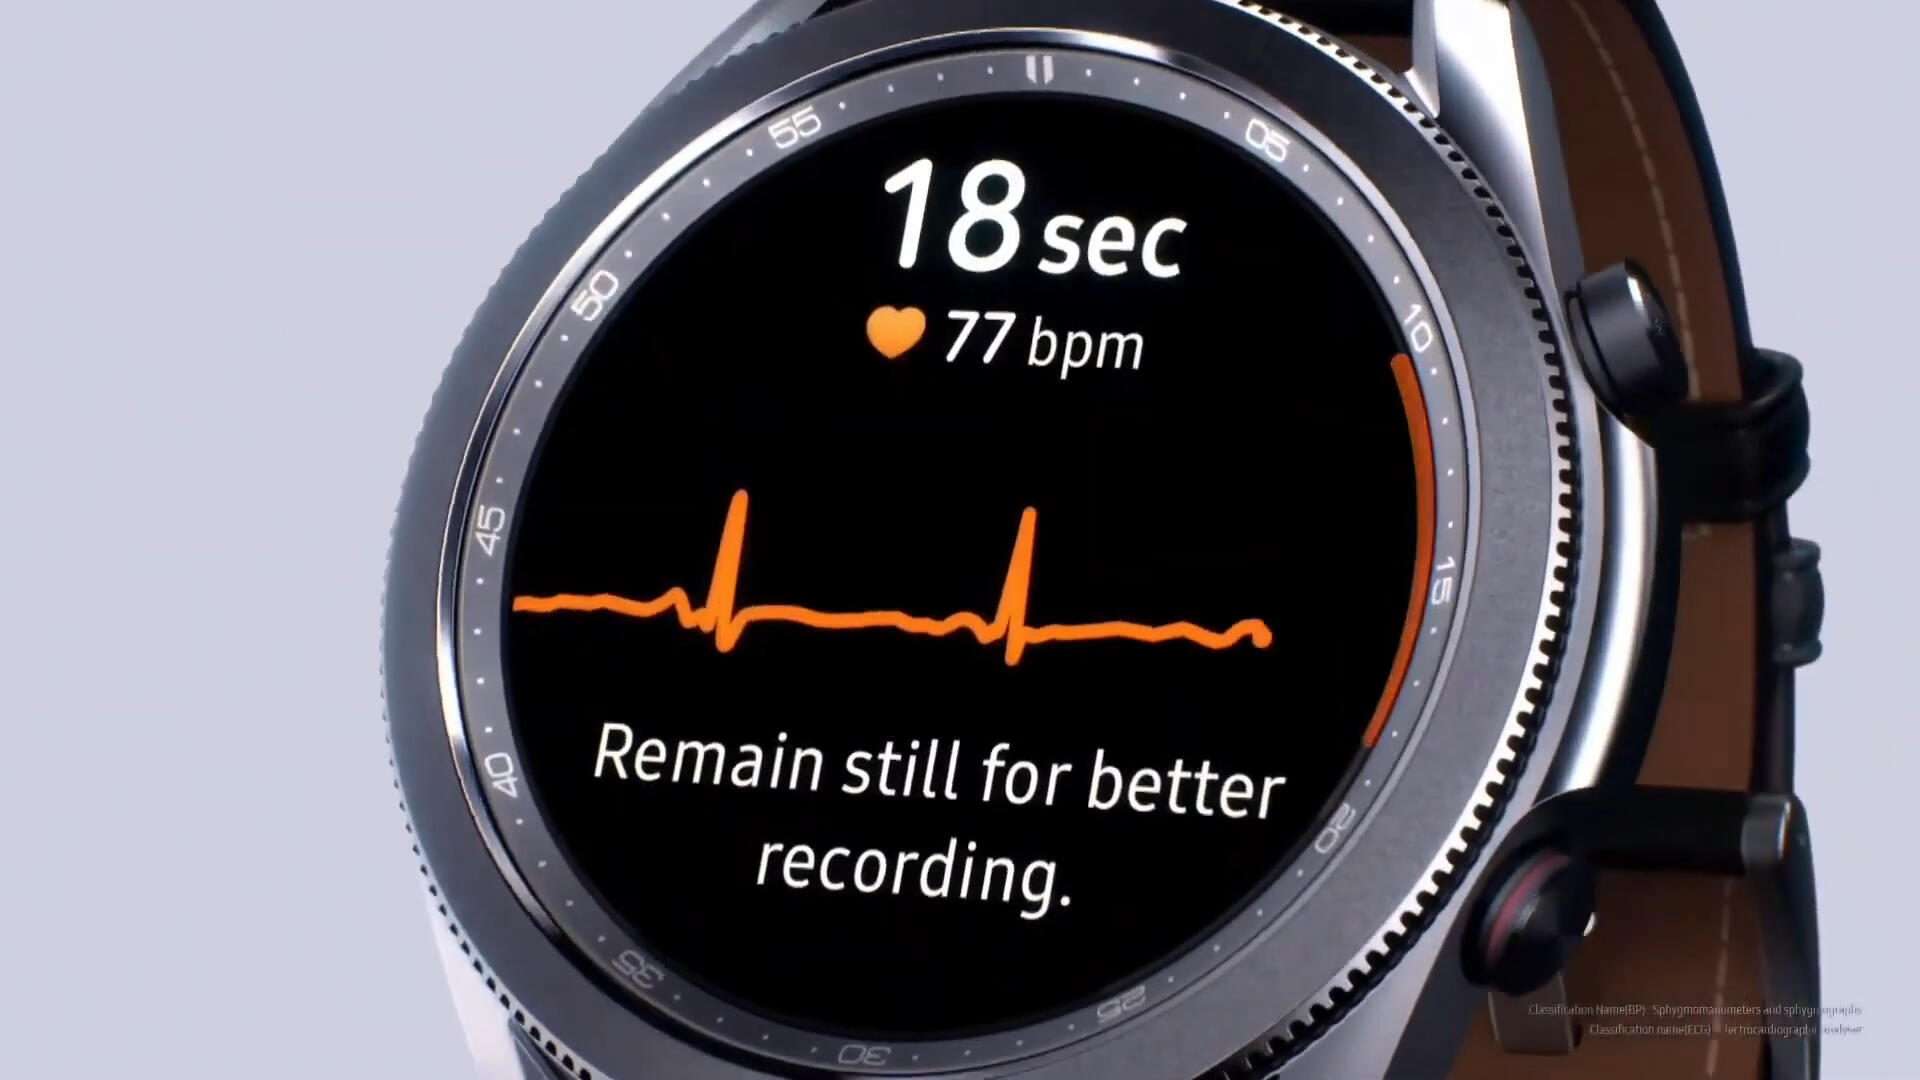 Video: Samsung Galaxy Watch 3 can check your blood pressure